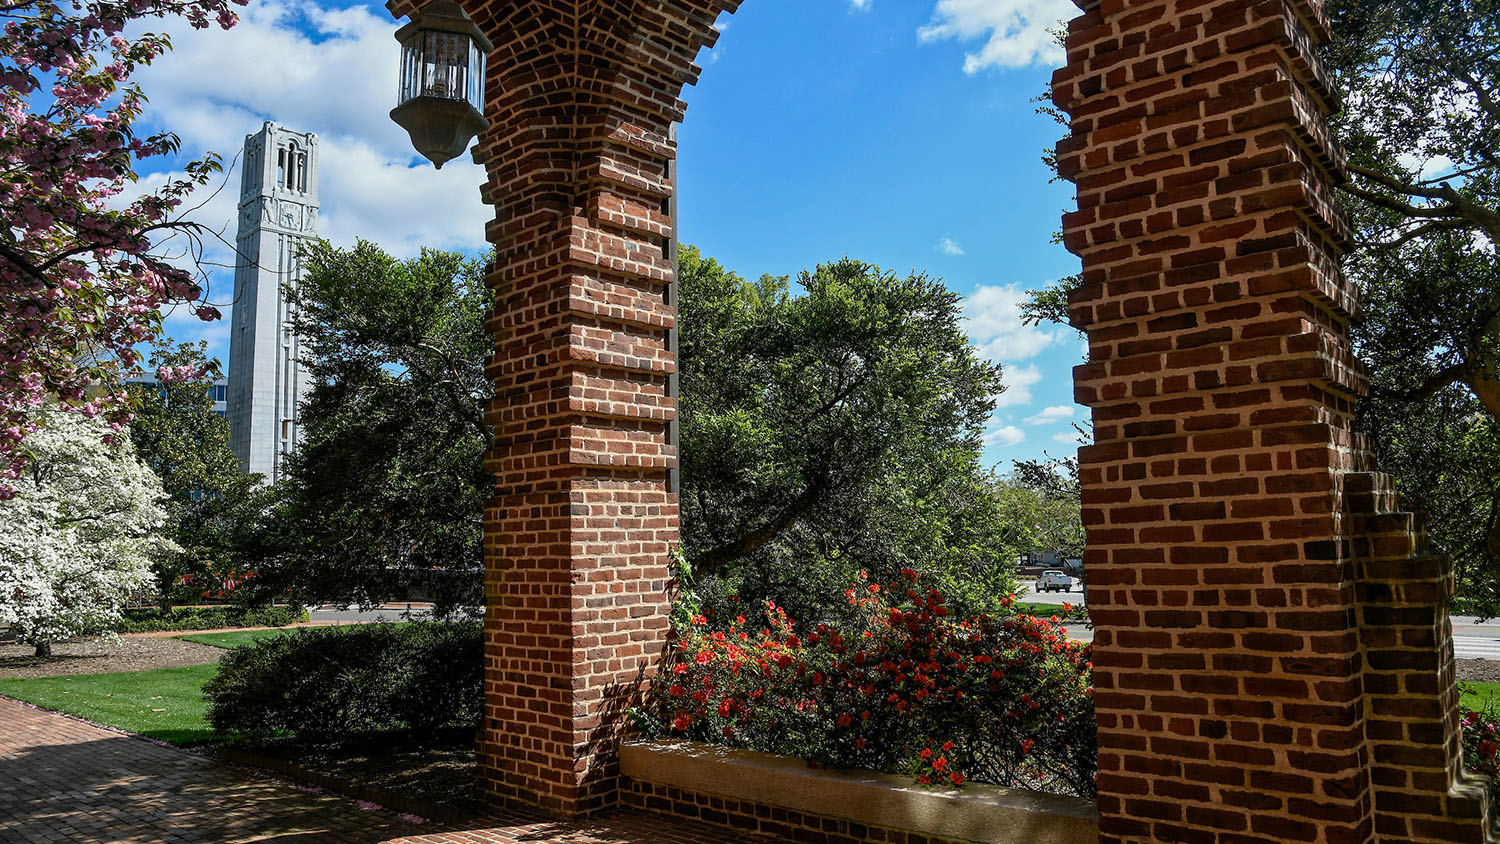 belltower framed by the arches of Holladay Hall